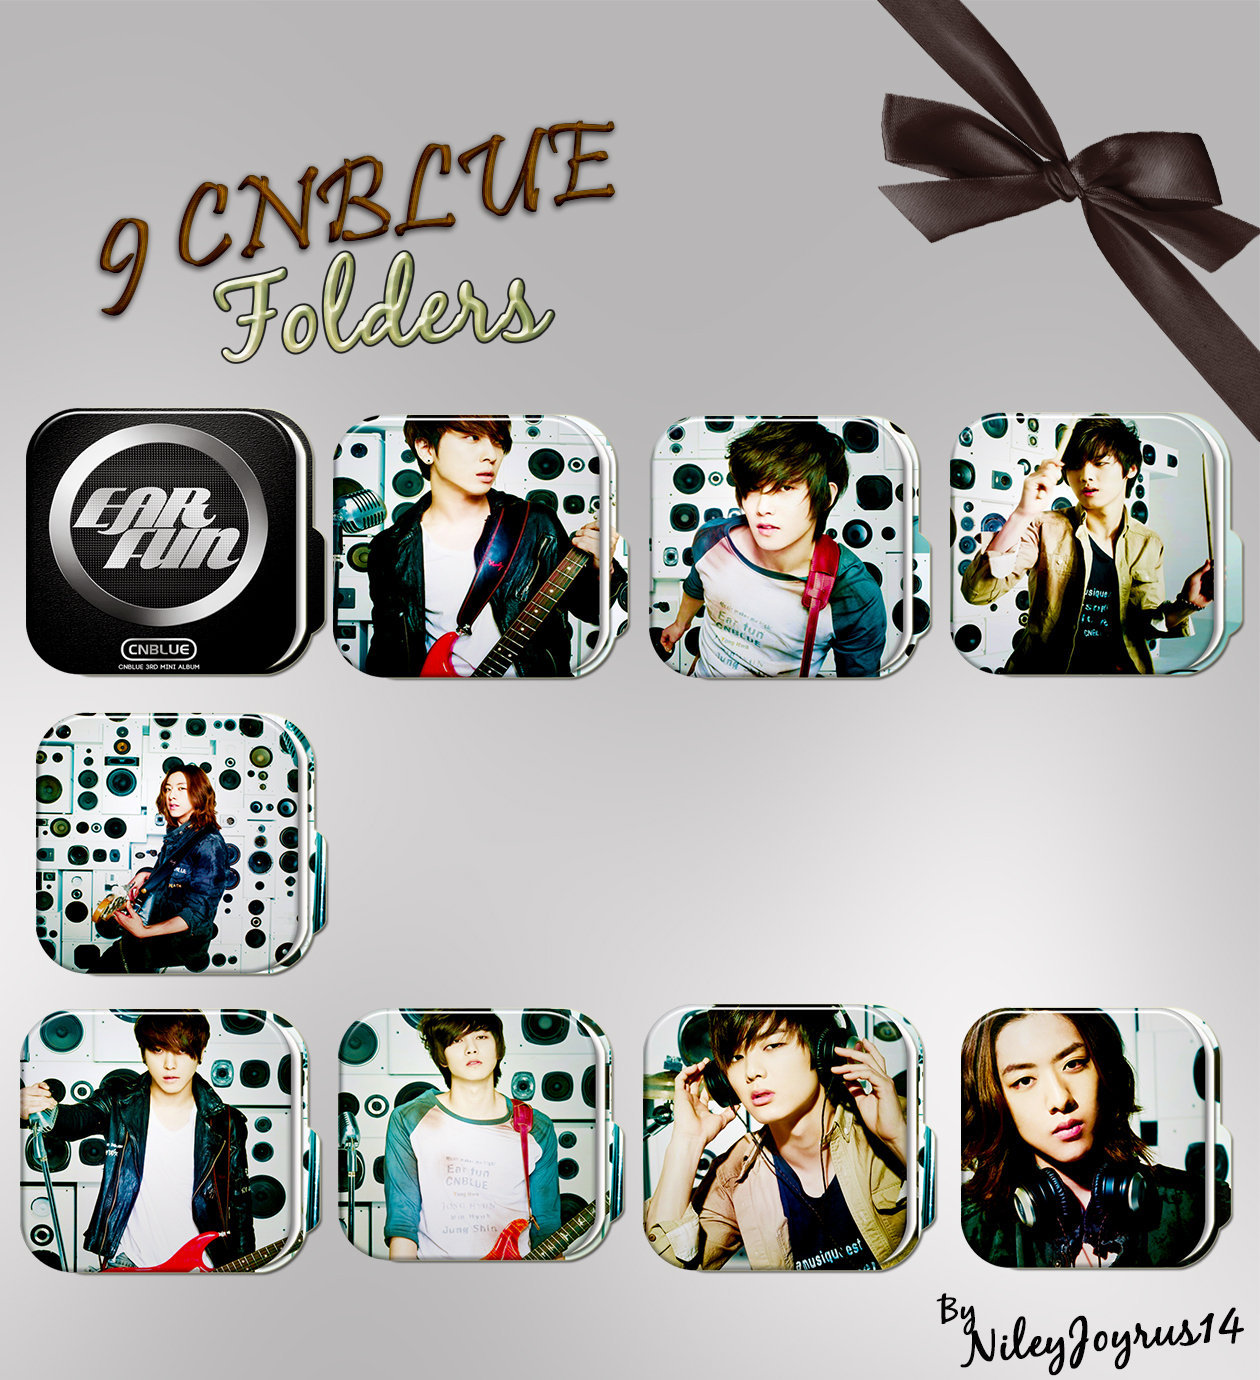 9 CNBLUE Hey You - Folders (Request) by NileyJoyrus14